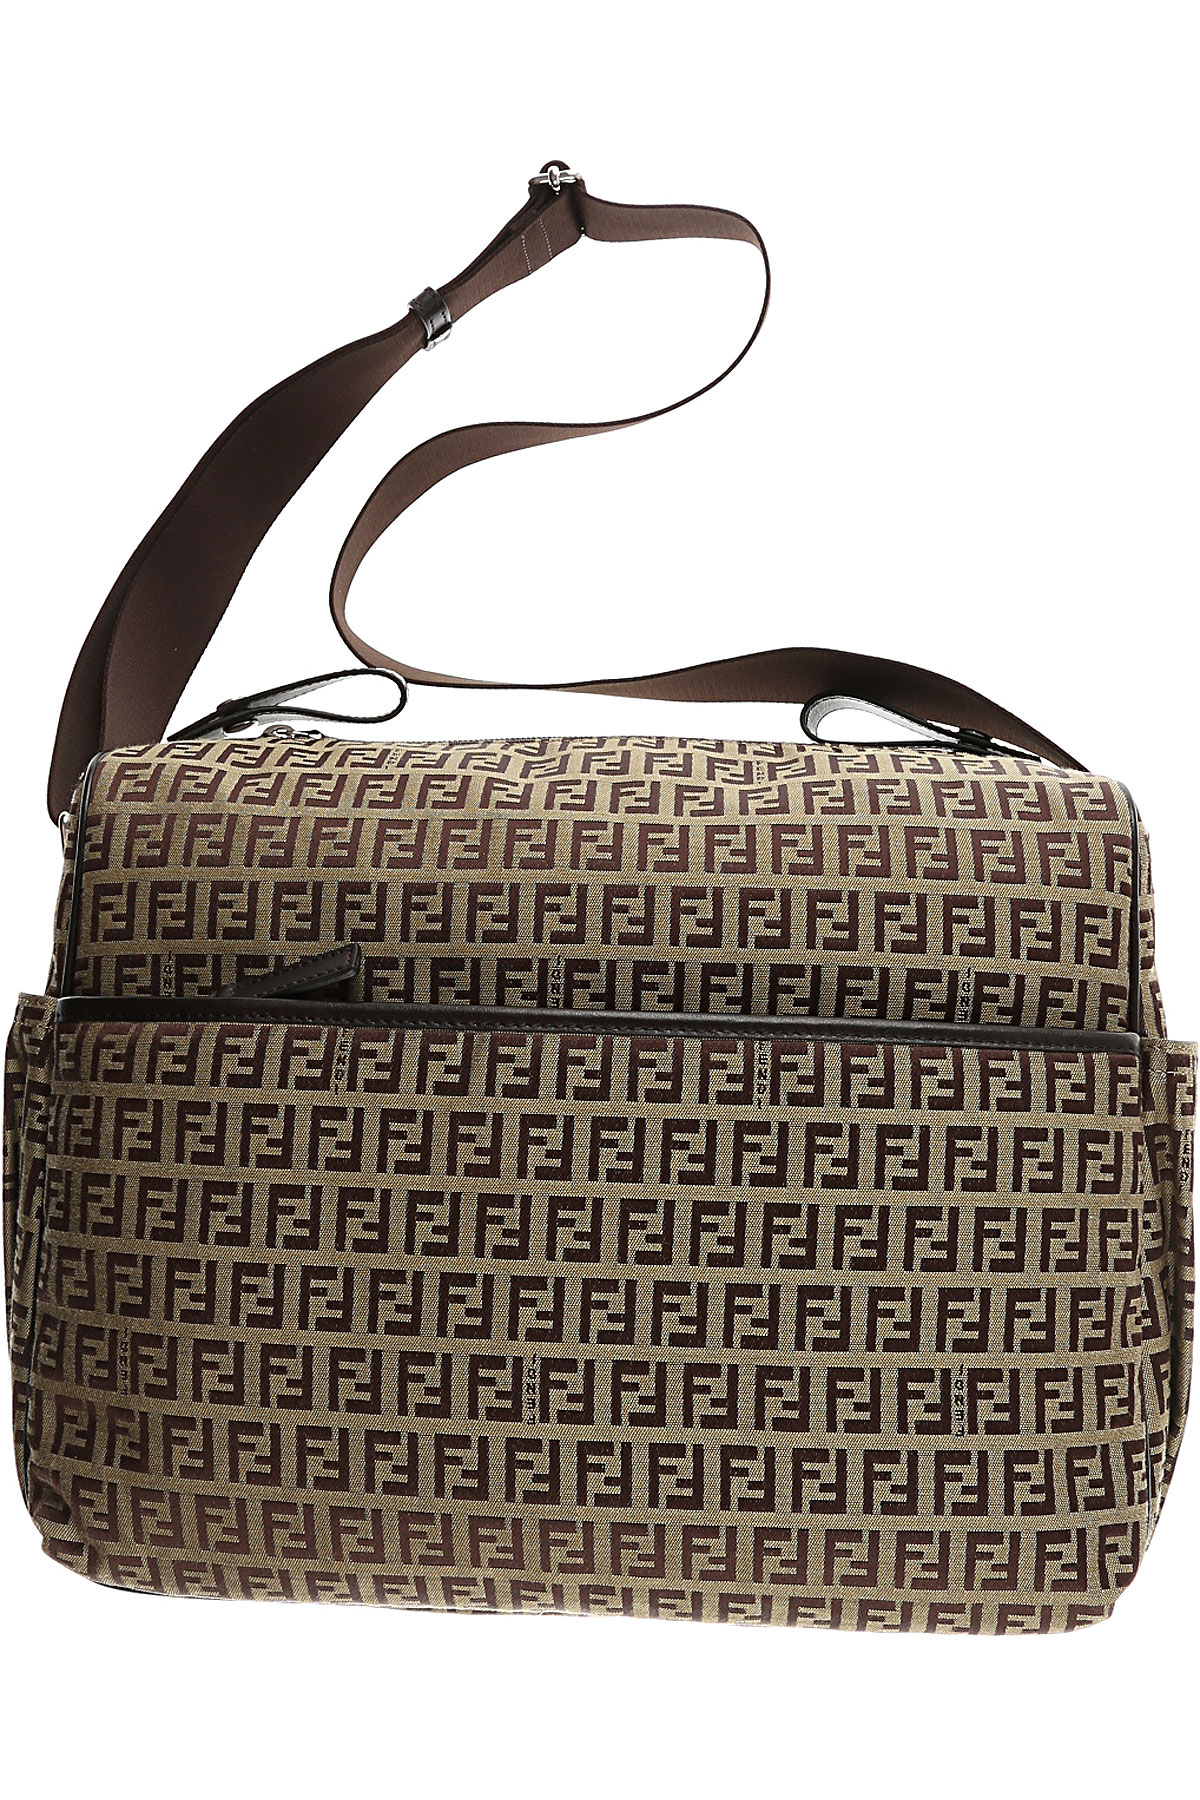 Image of Fendi Baby Girls Handbag, Brown, Fabric, 2017